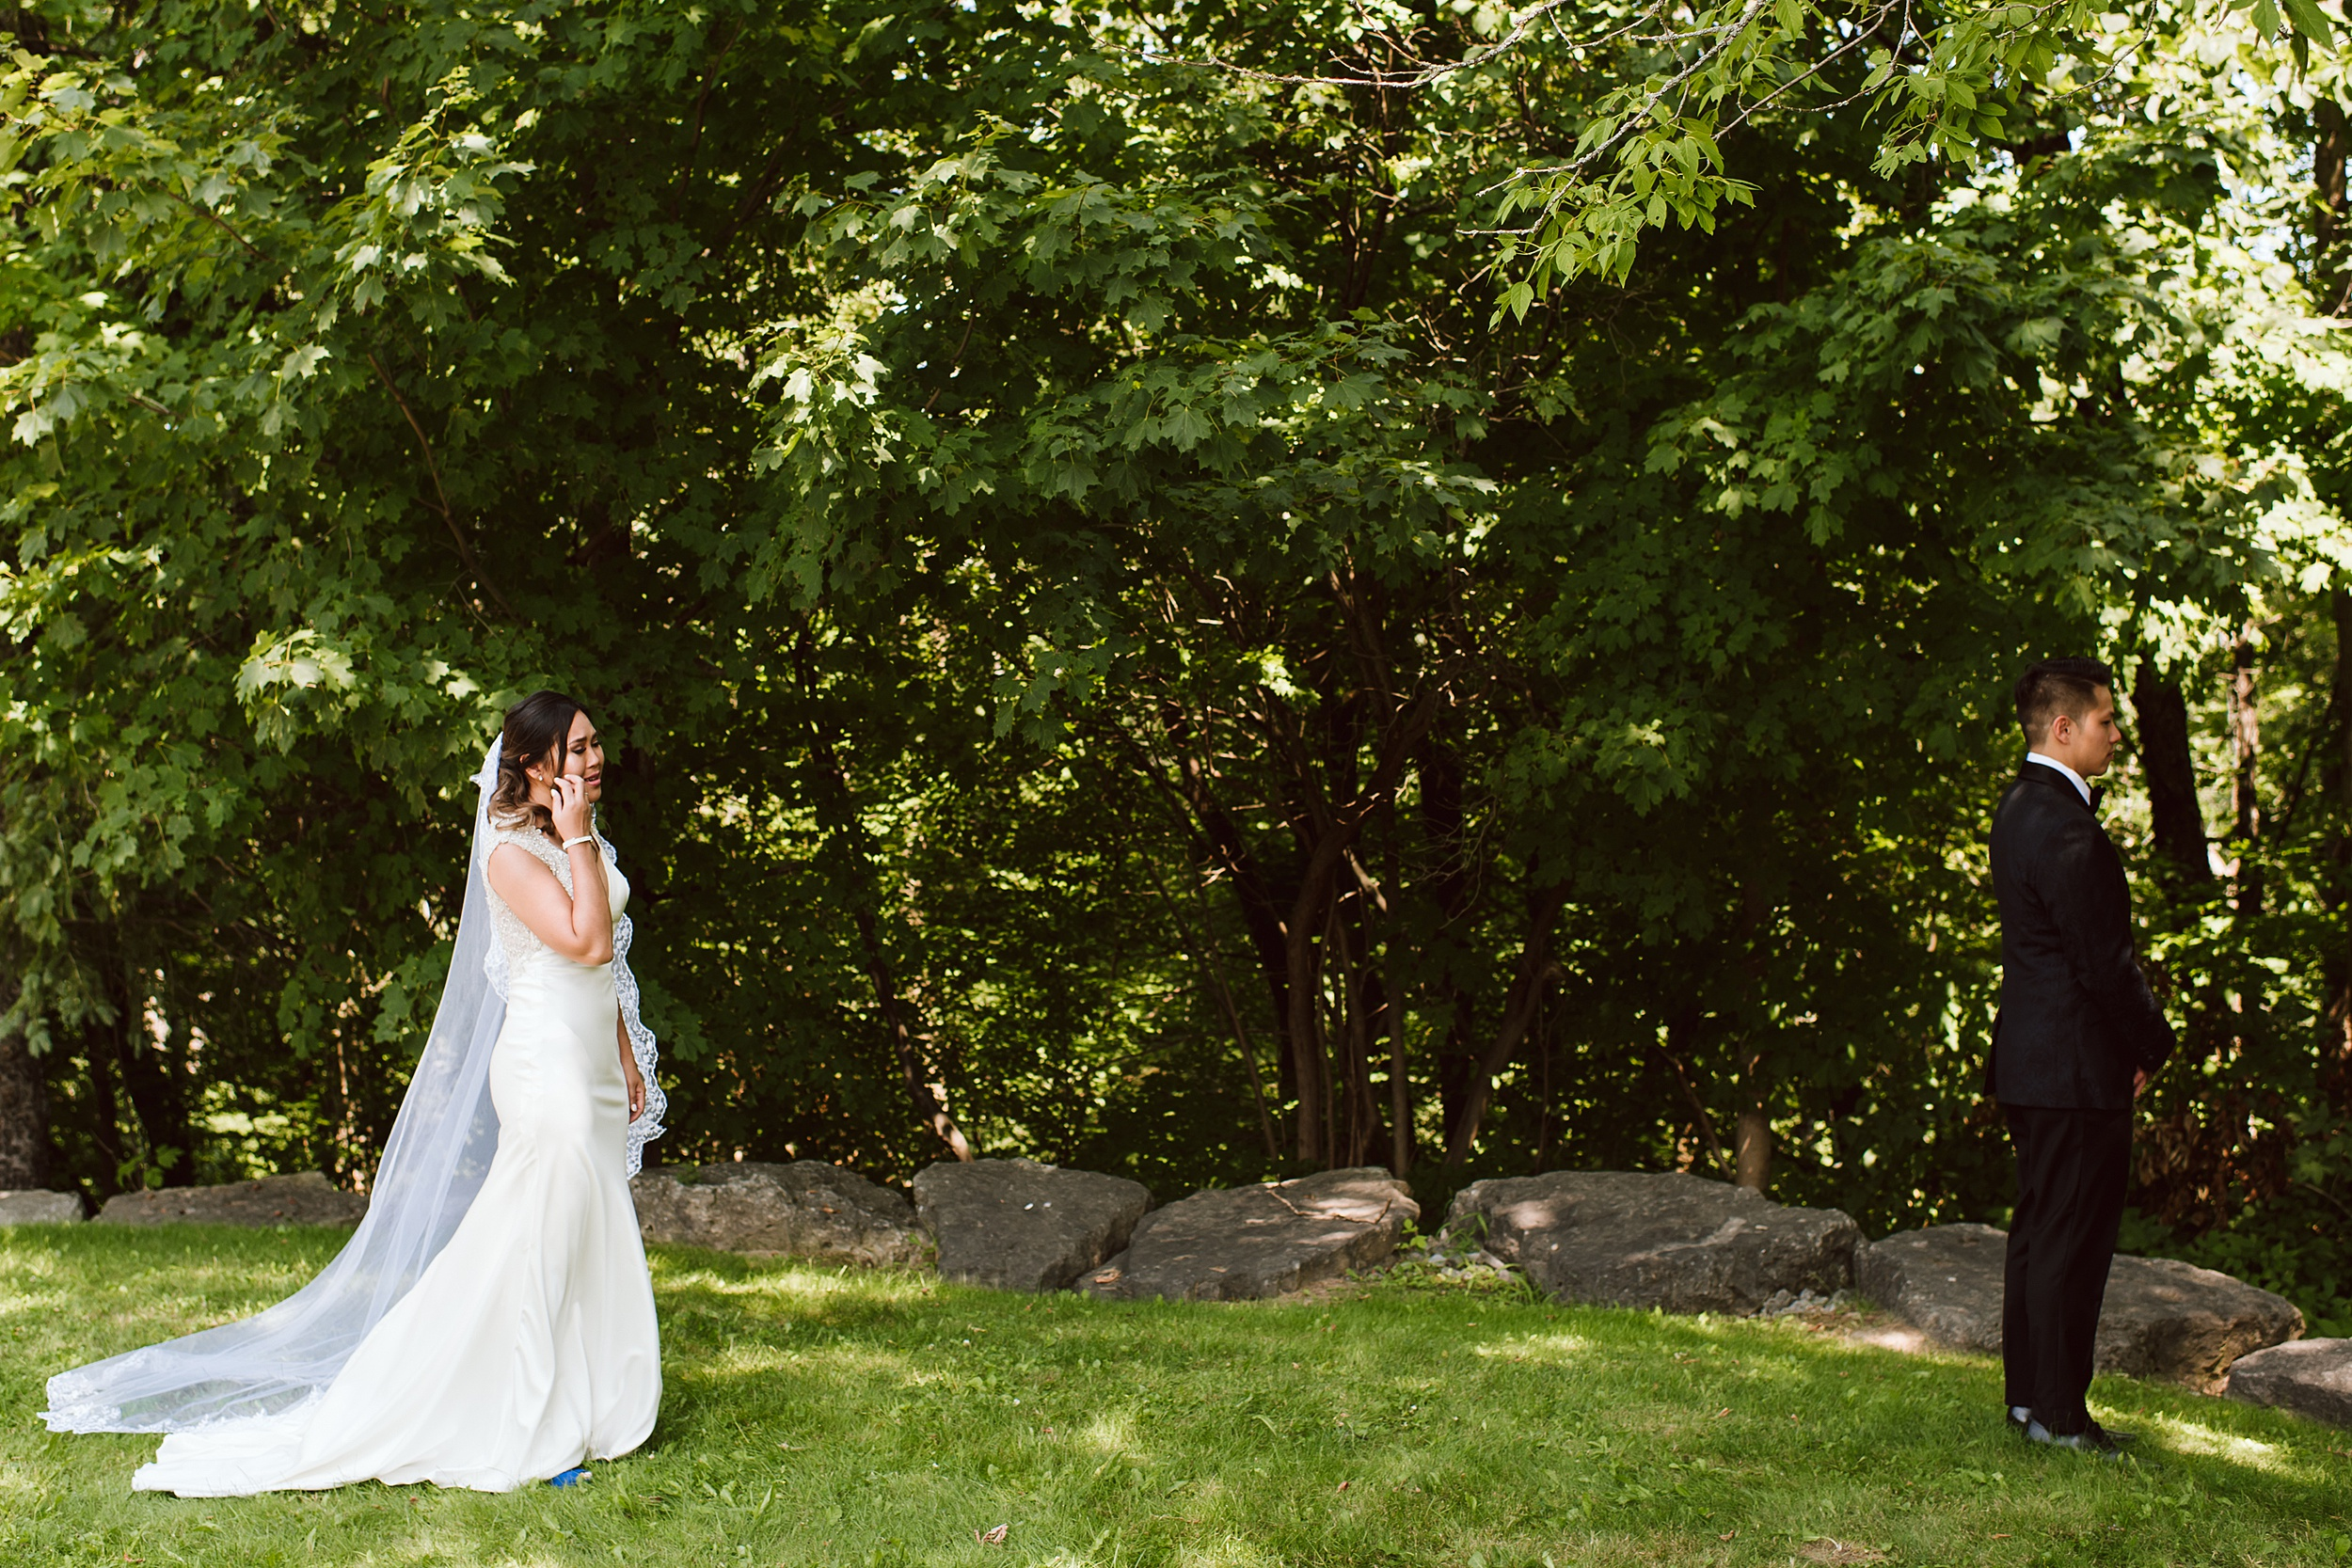 Hartman_Gallery_Mount_Albert_Toronto_Wedding_Photographer_0012.jpg